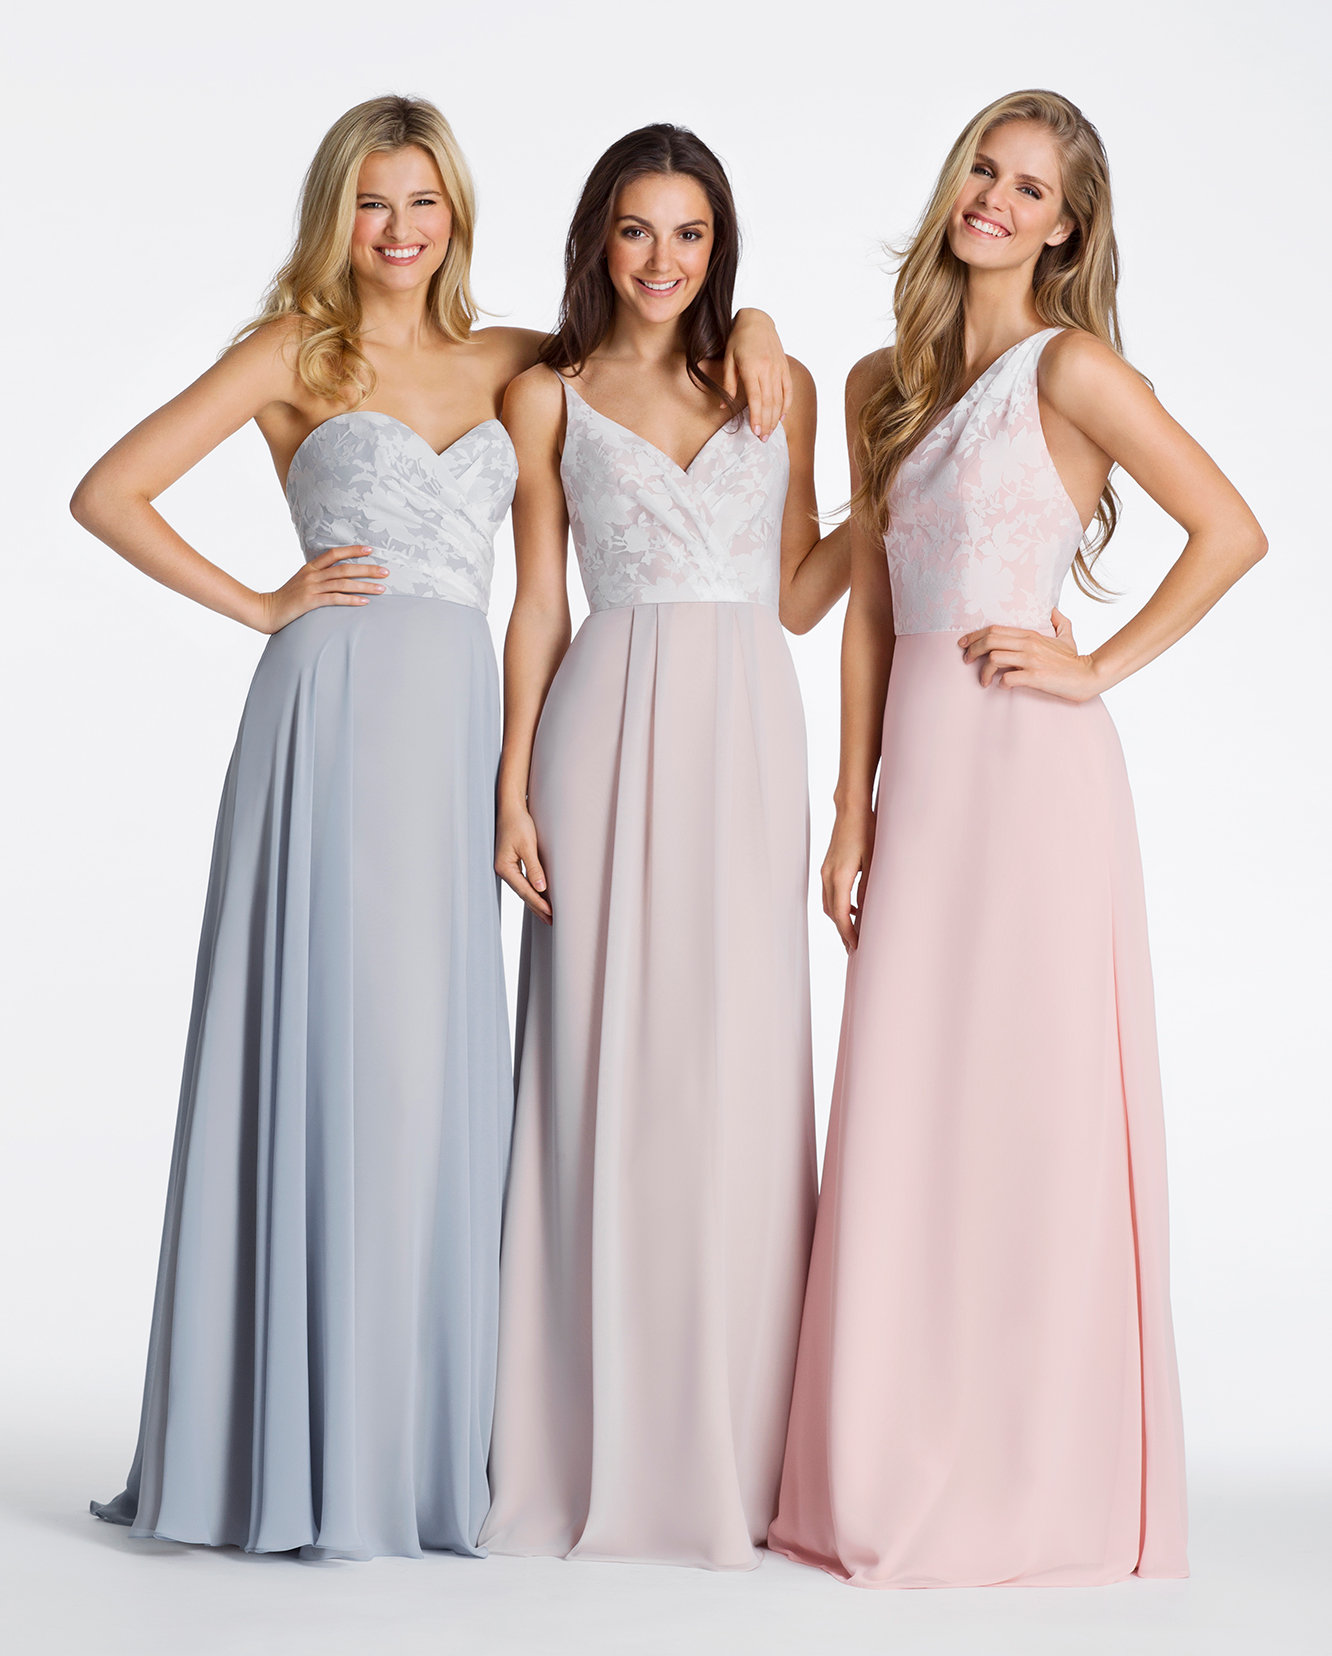 Bridesmaids special occasion dresses and bridal party gowns by style 5604 alternate view ombrellifo Choice Image